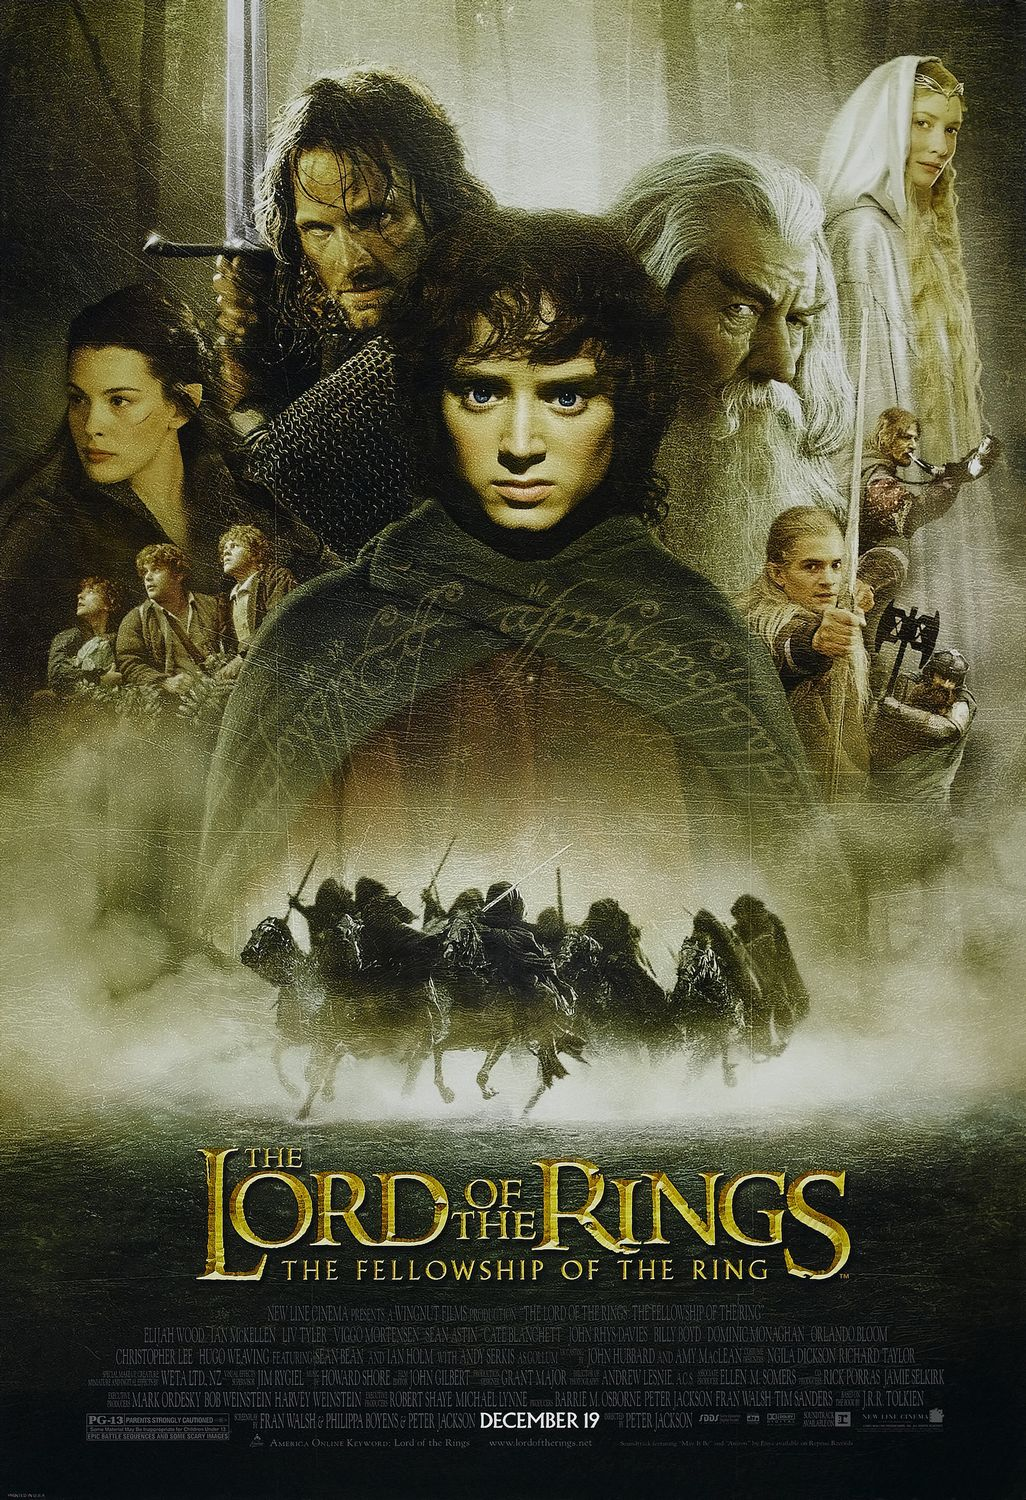 #11: The Lord of the Rings: The Fellowship of the Ring (2001)